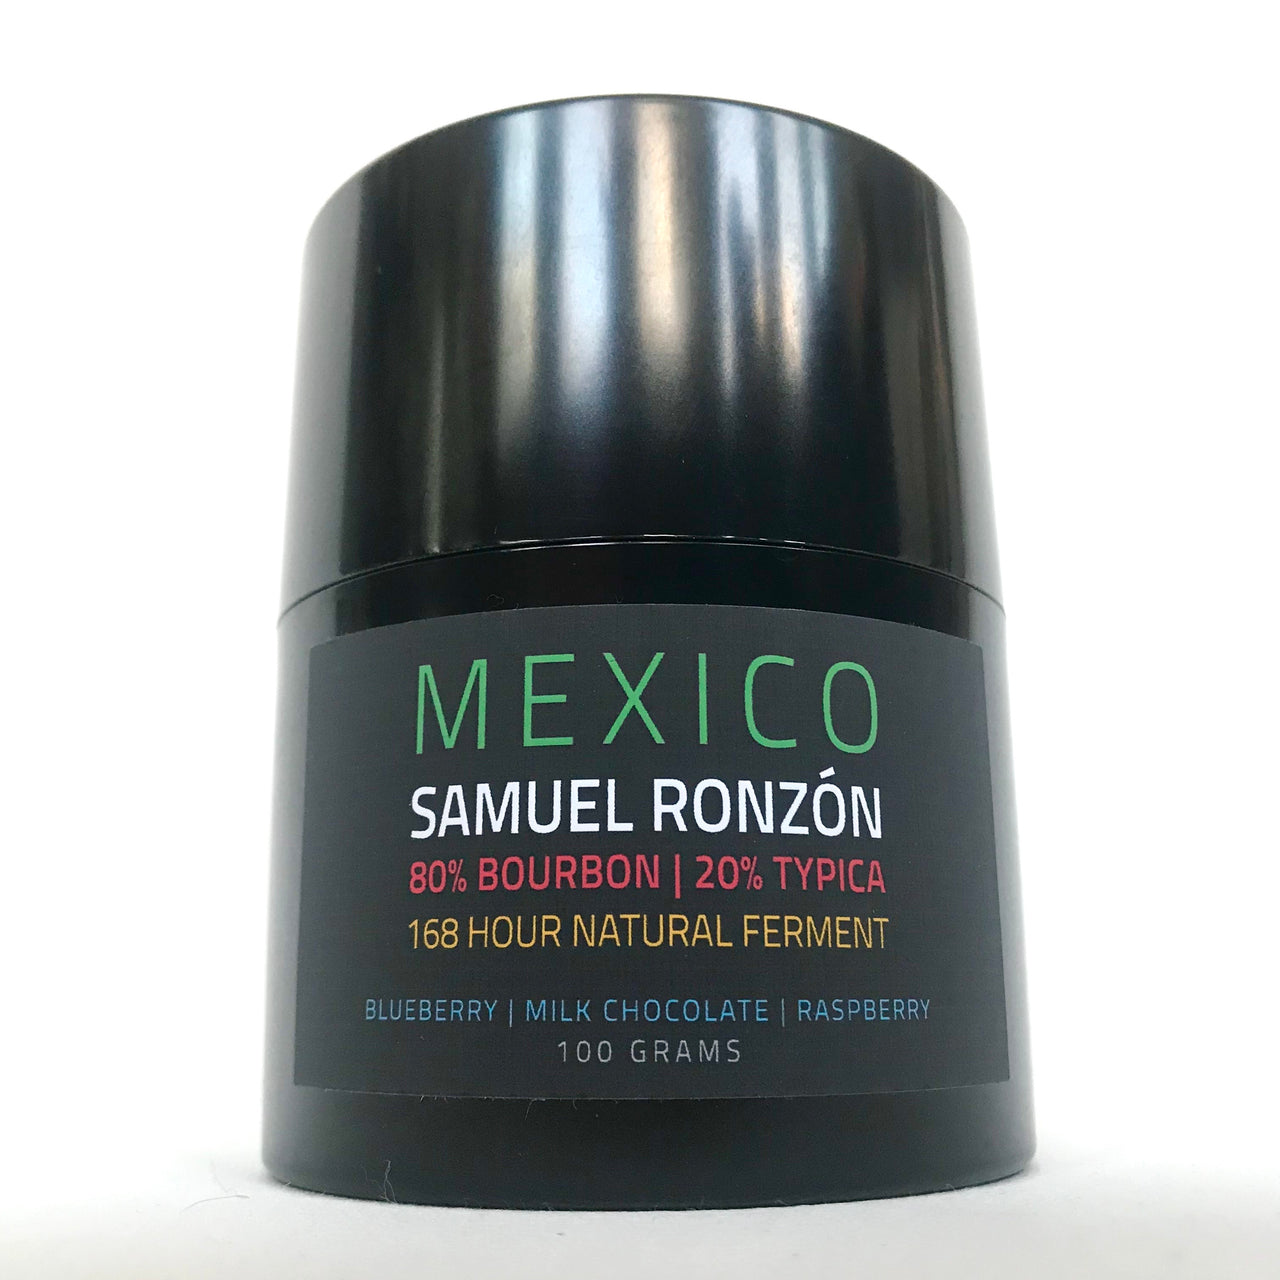 Mexico Samuel Ronzón Lot 5